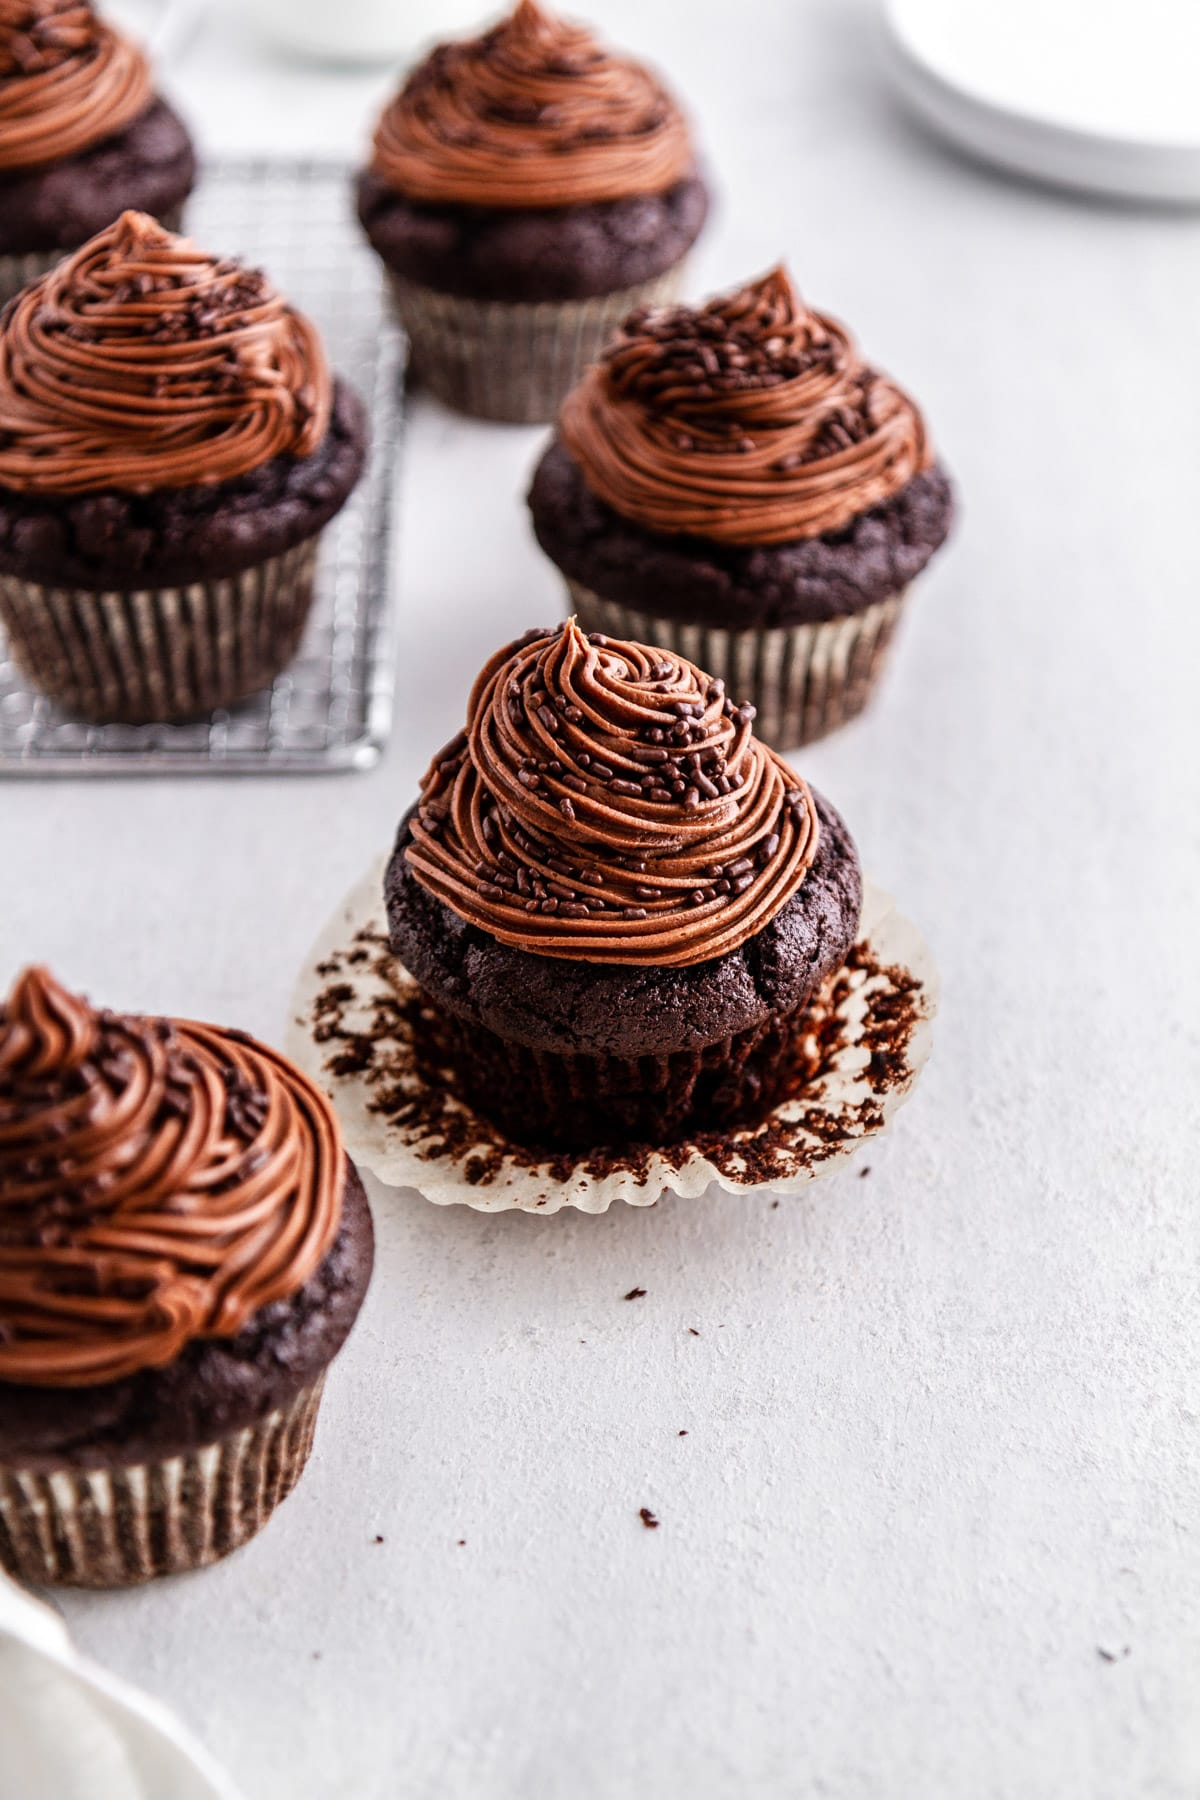 chocolate cupcakes on a cooling rack and on a surface